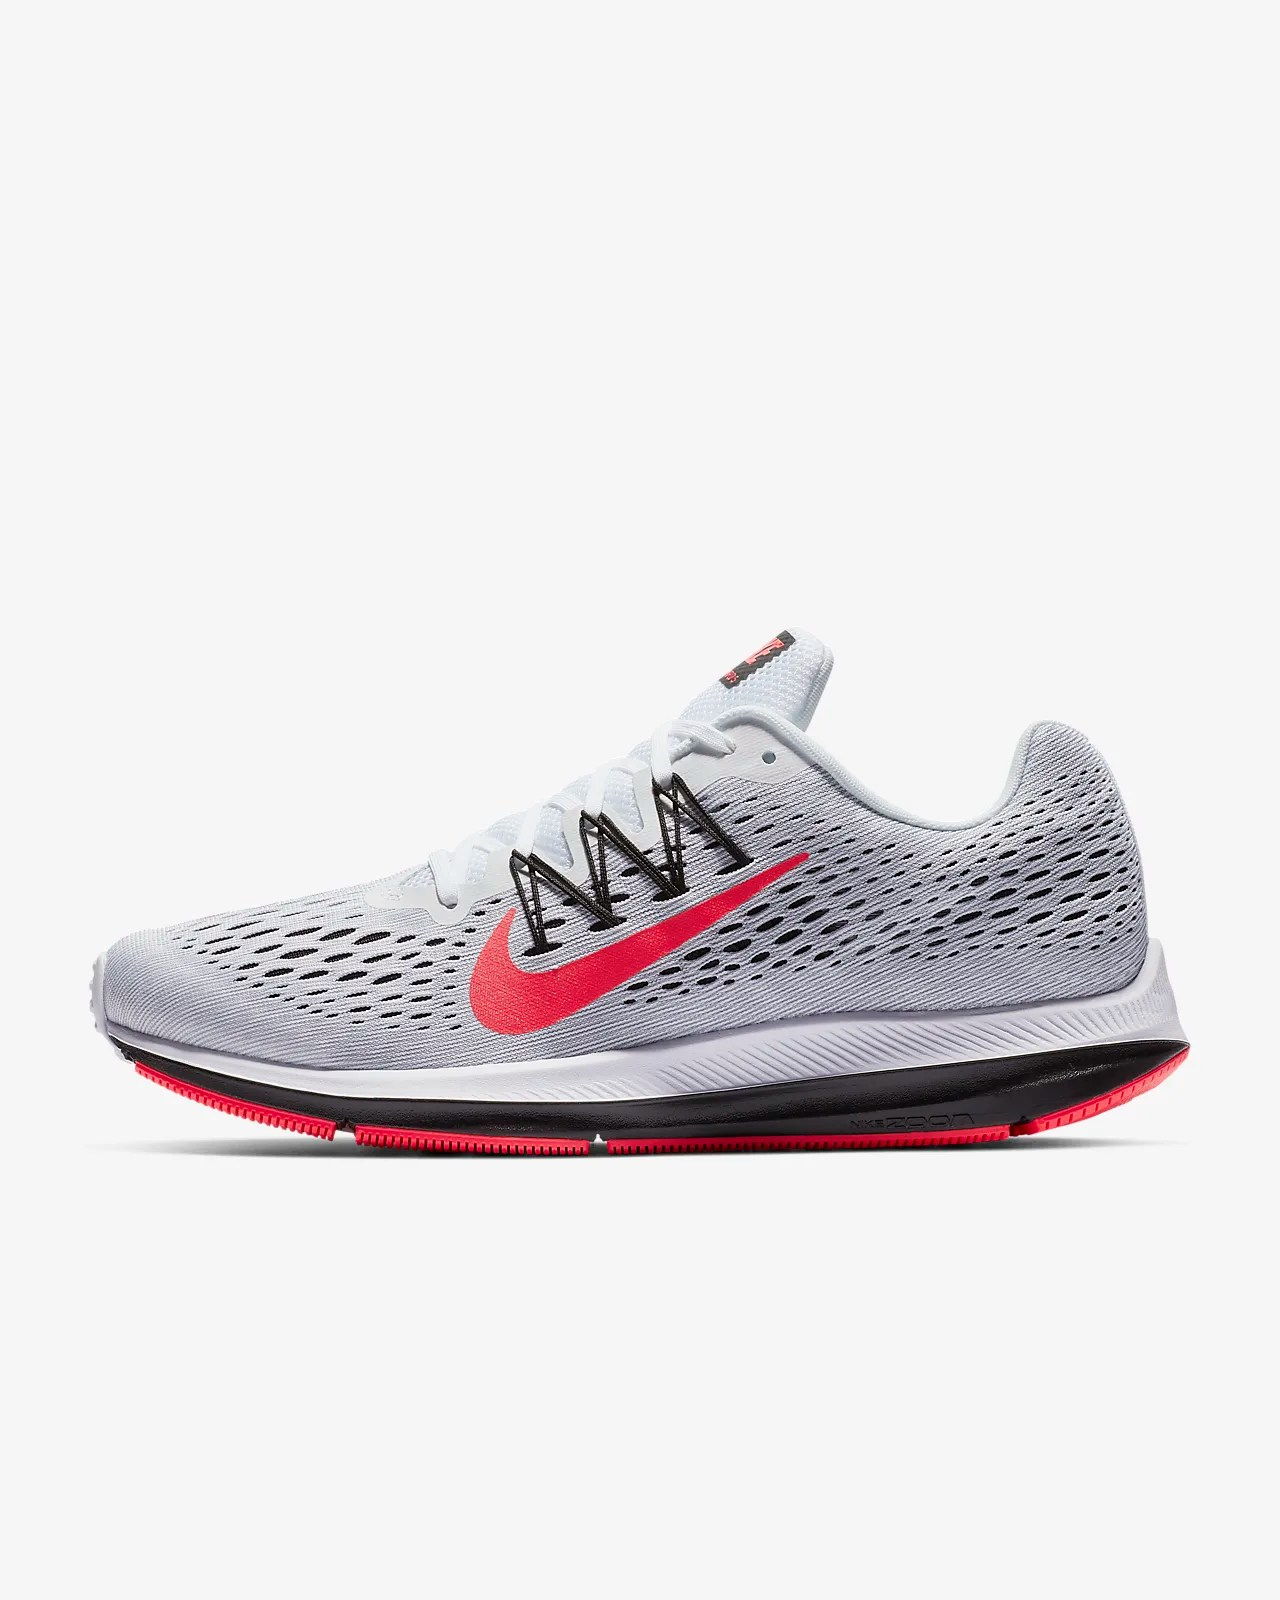 Ruze Shoes: Nike Air Zoom Fearless Fk 2 Womens Gray Athletic Gym Cross Training Shoes 8 |